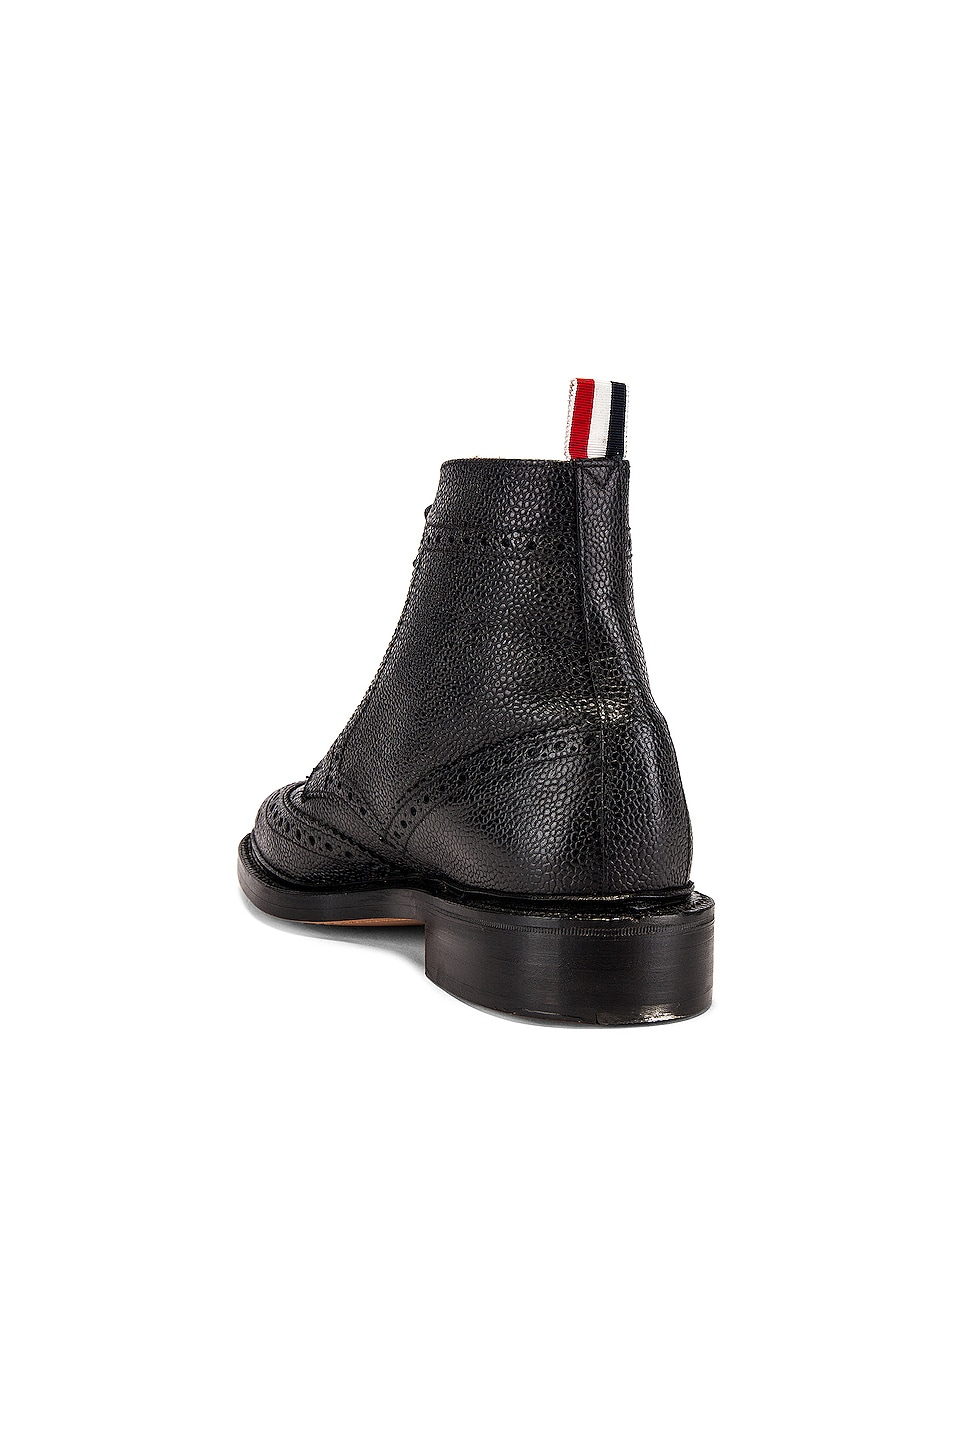 Image 3 of Thom Browne Wingtip Leather Boots in Black